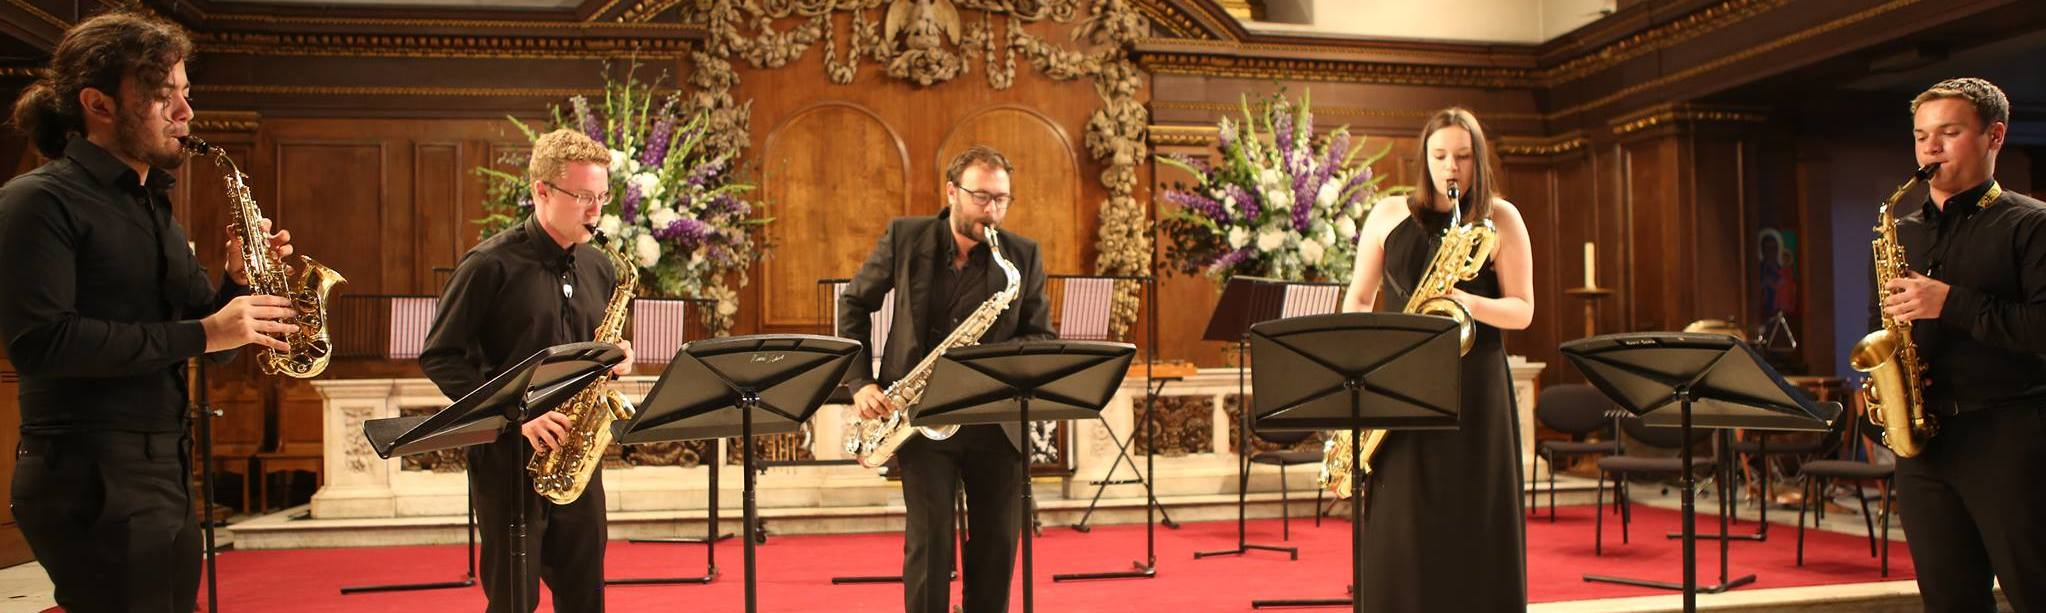 Saxophone summer course England - Concert at St James' Piccadilly